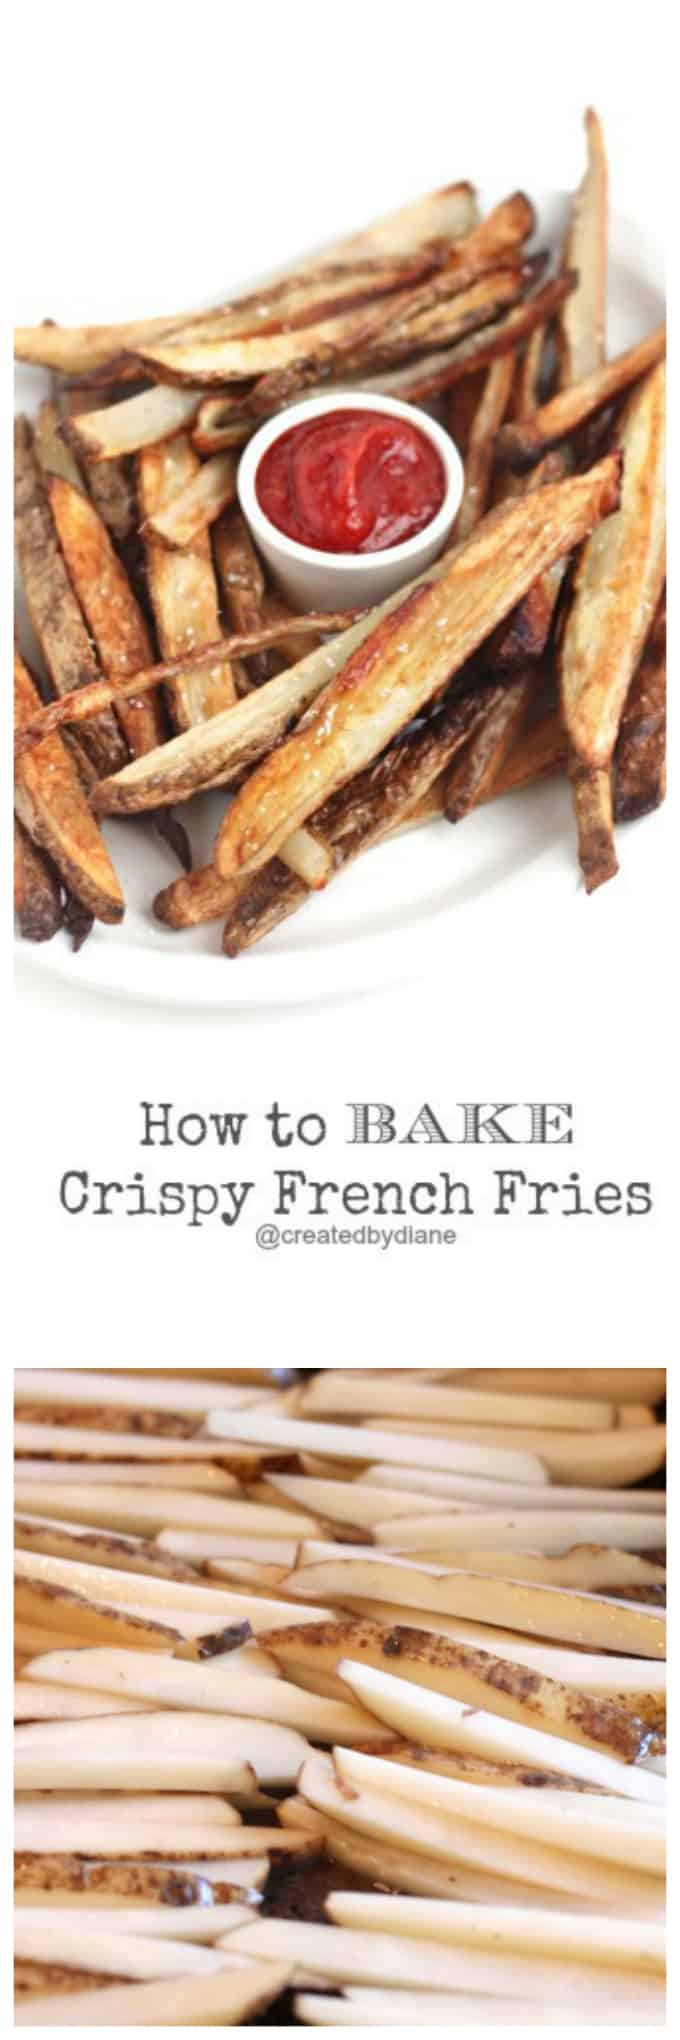 easy how to bake crispy baked french fries www.createdbydiane.com